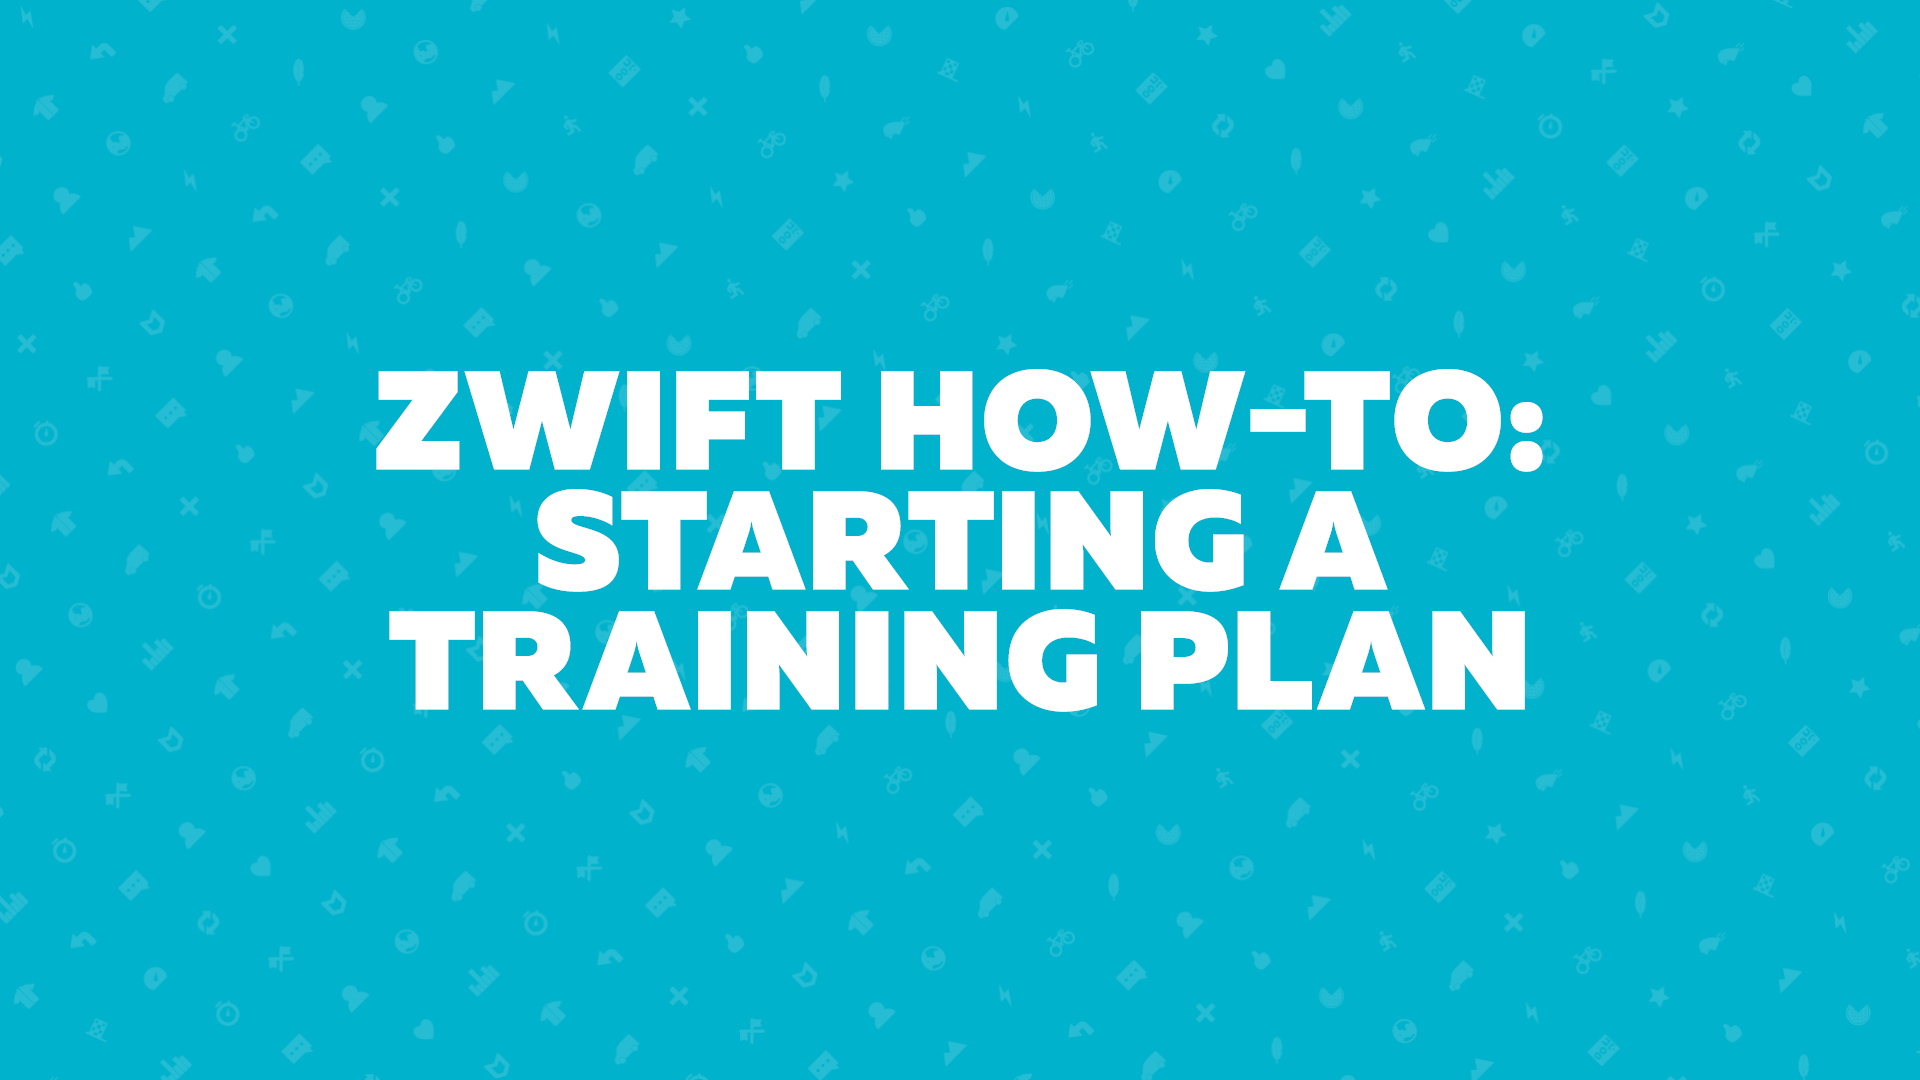 Zwift How-To: Starting a Training Plan | Zwift